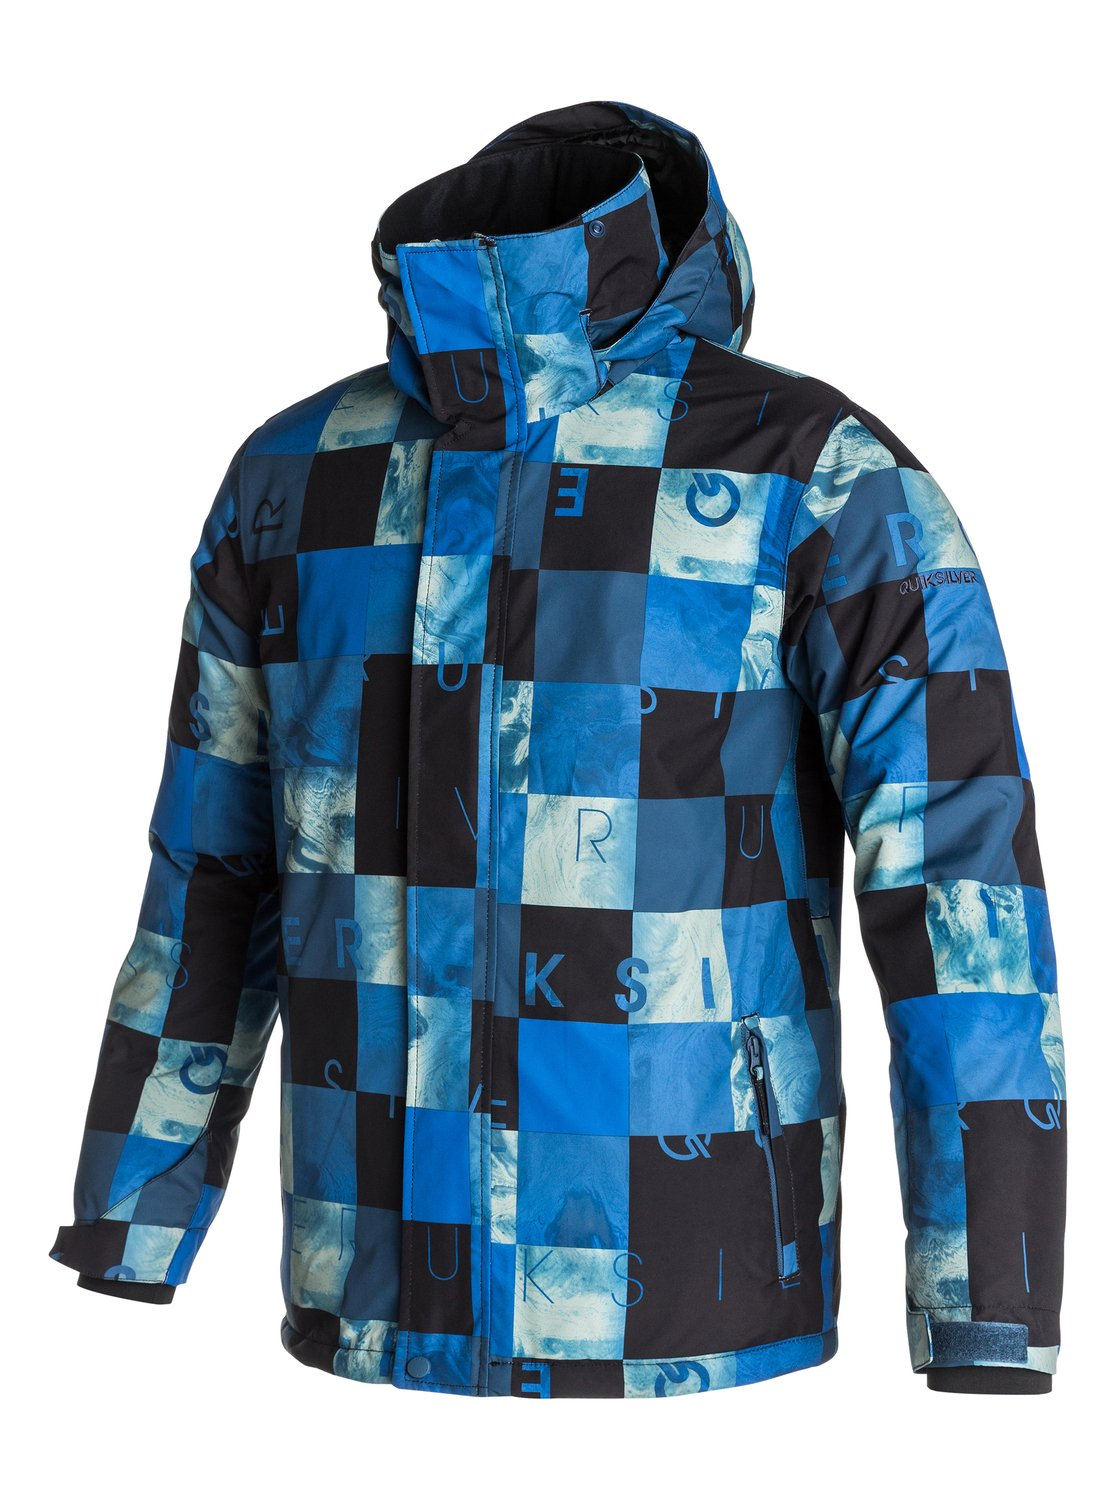 veste snowboard homme quiksilver les vestes la mode sont populaires partout dans le monde. Black Bedroom Furniture Sets. Home Design Ideas